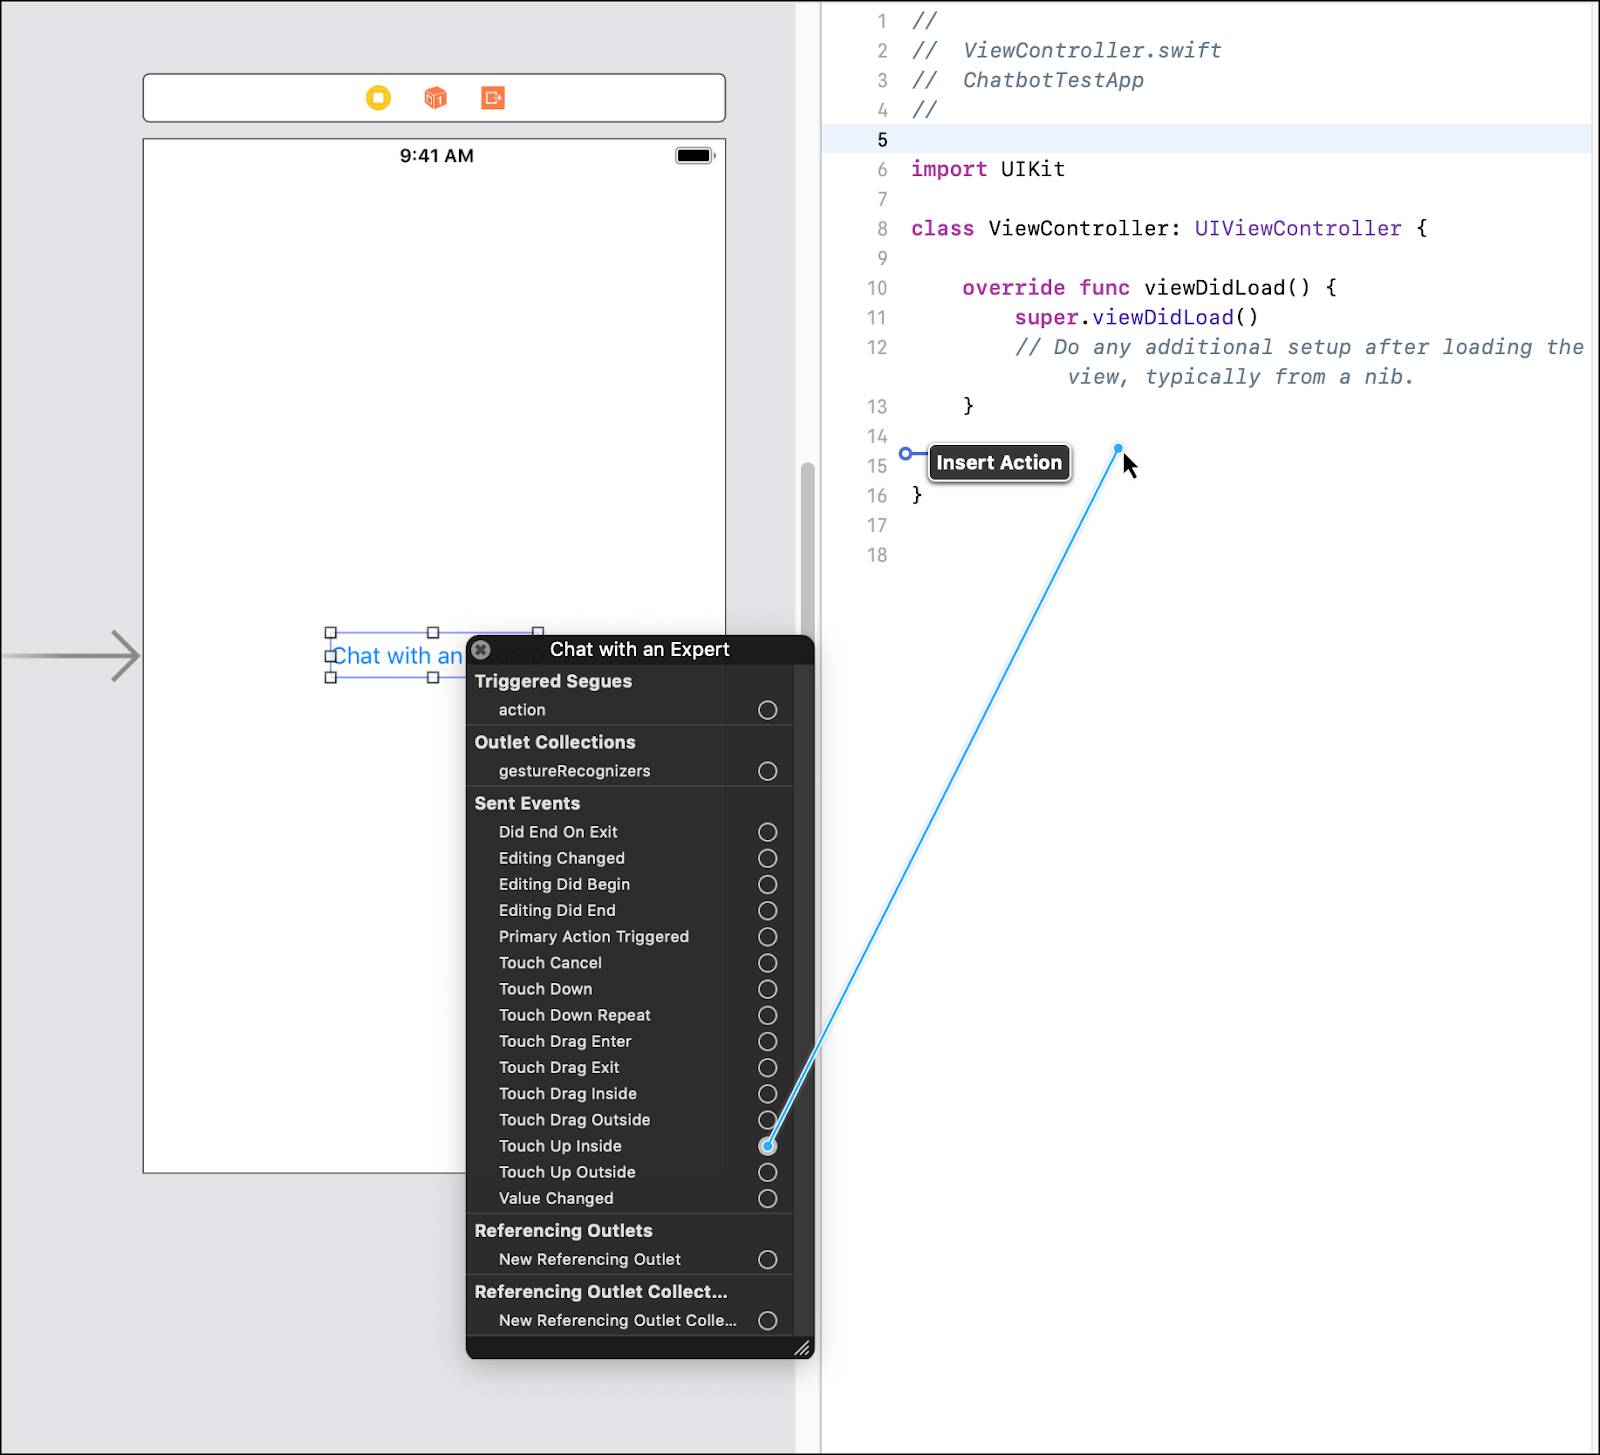 The Chat with an Expert button menu open and a drag path from Touch Up Inside to the ViewController class.